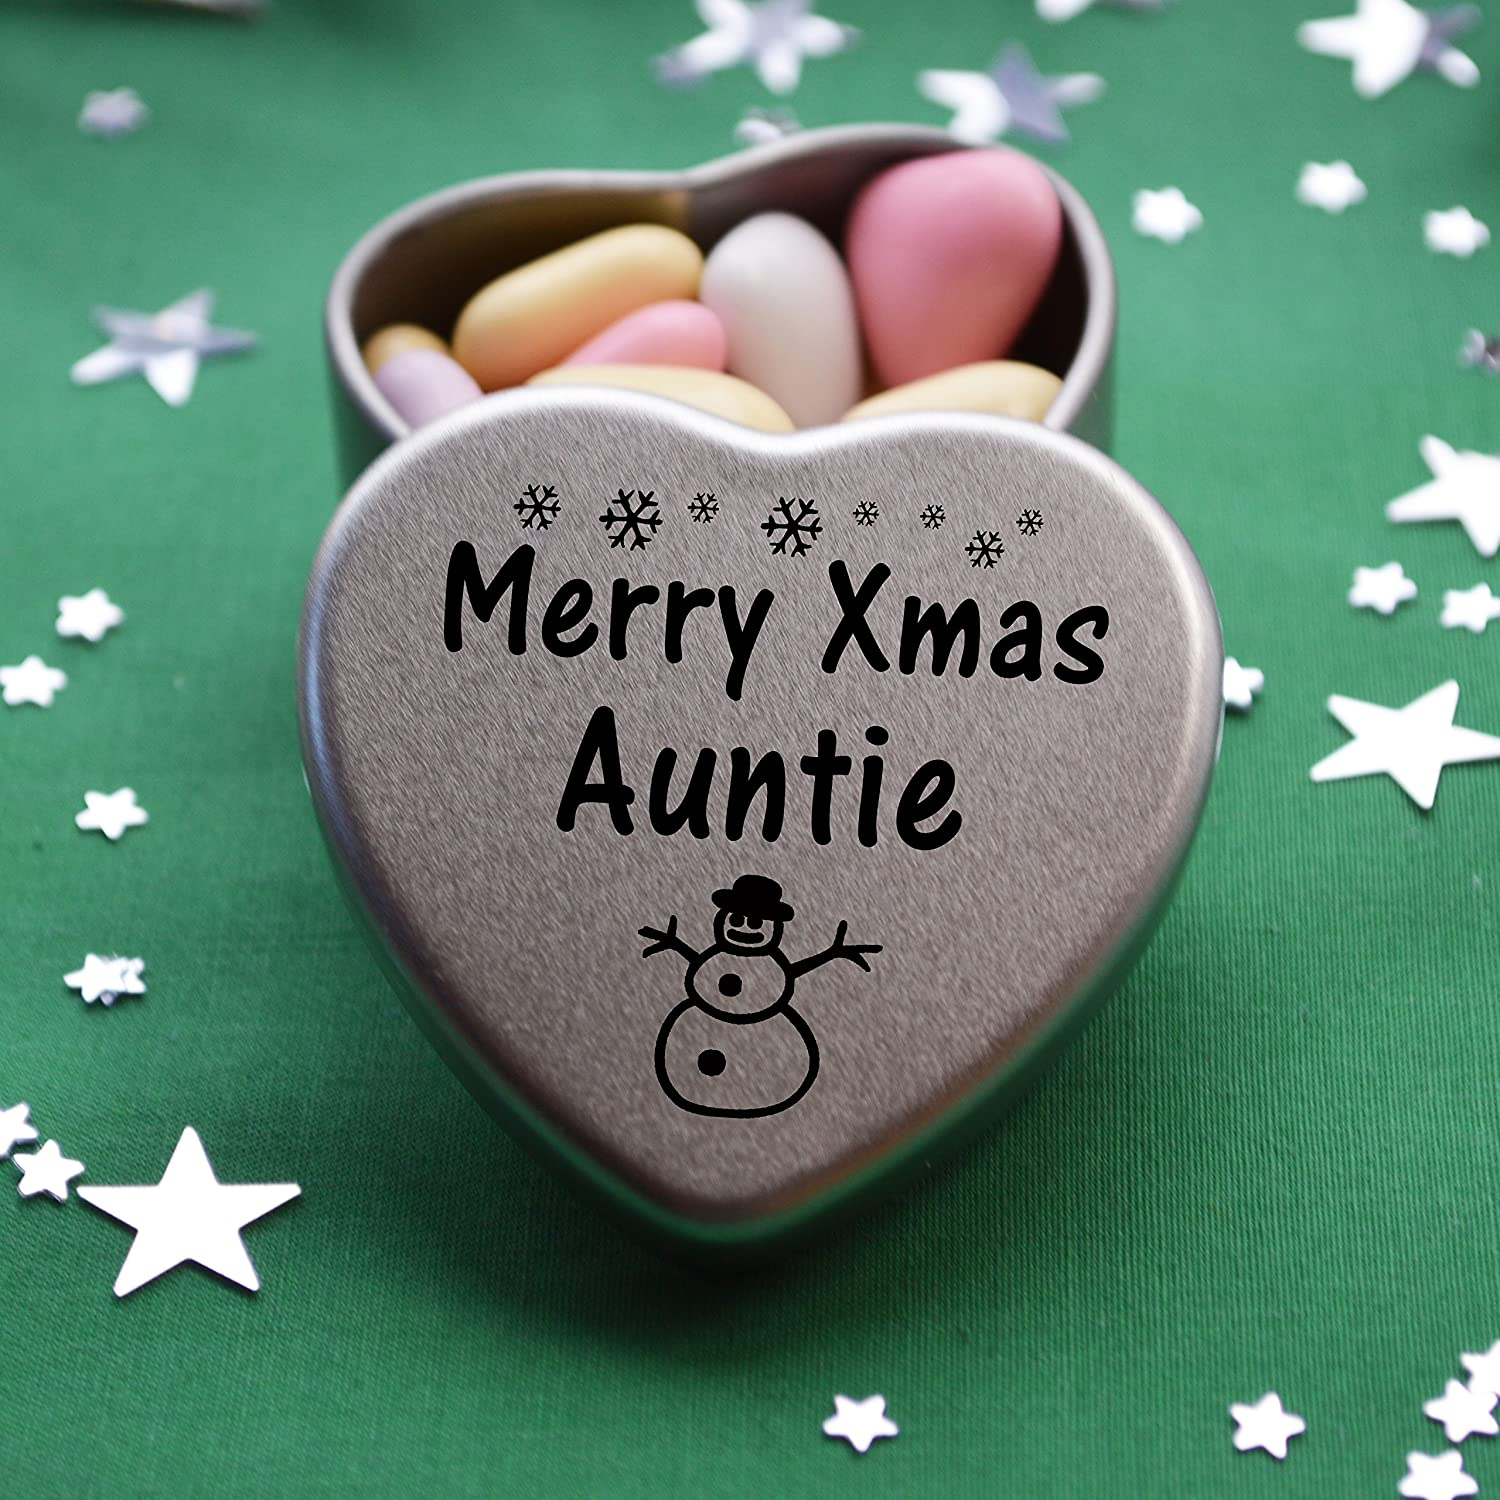 Merry Christmas Auntie Mini Heart Gift Tin with Chocolates Fits Beautifully in the palm of your hand. Great Christmas Present for Auntie Makes the perfect Stocking Filler or Card alternative. Tin Dimensions 45mmx45mmx20mm. Three designs Available, Father